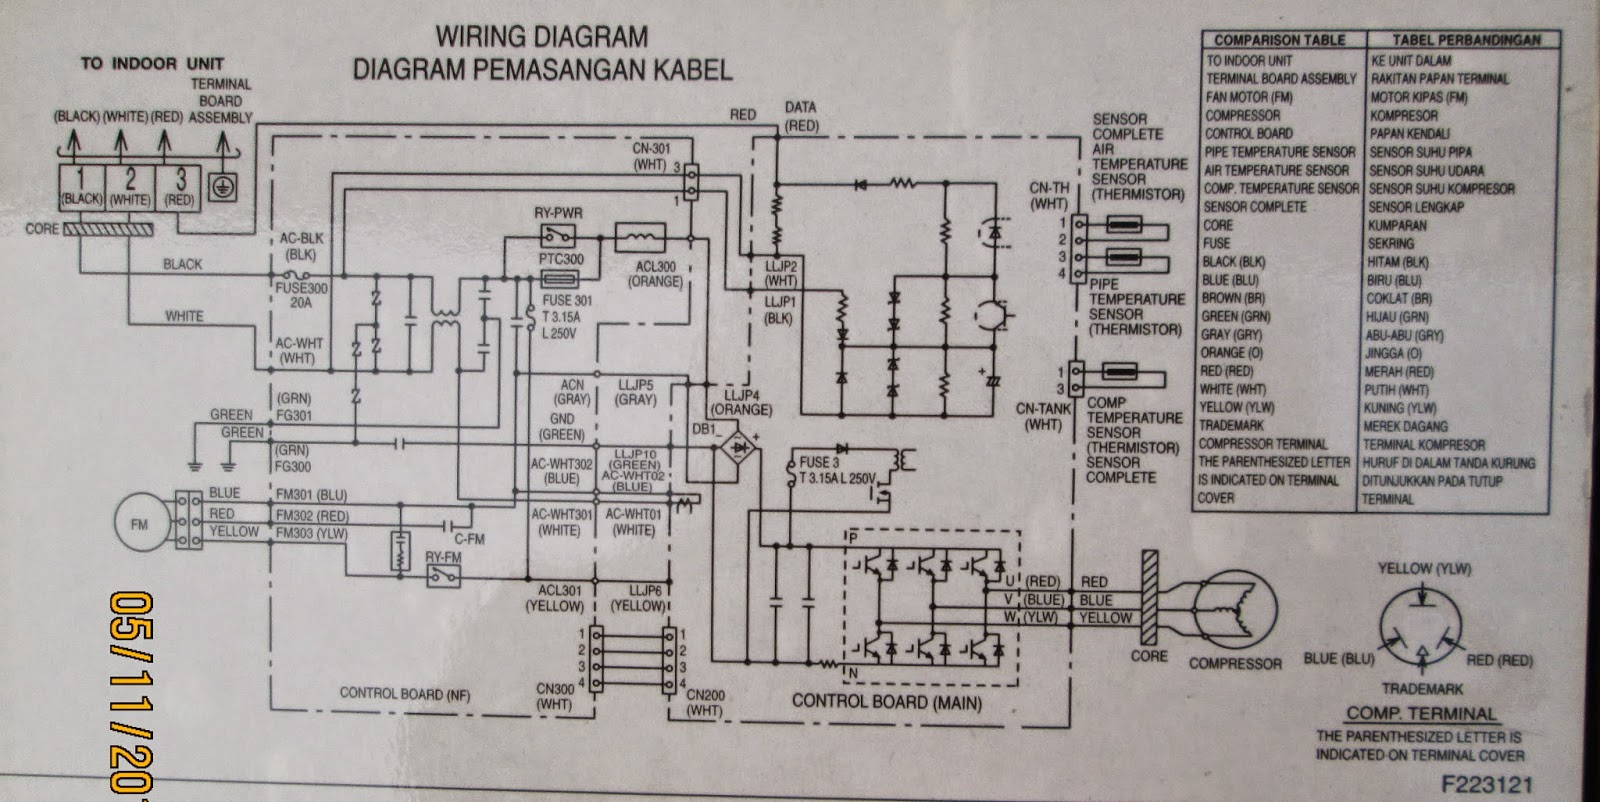 wiring kelistrikan system air conditioner wiring diagrams konsult wiring diagram kompresor ac split [ 1600 x 802 Pixel ]